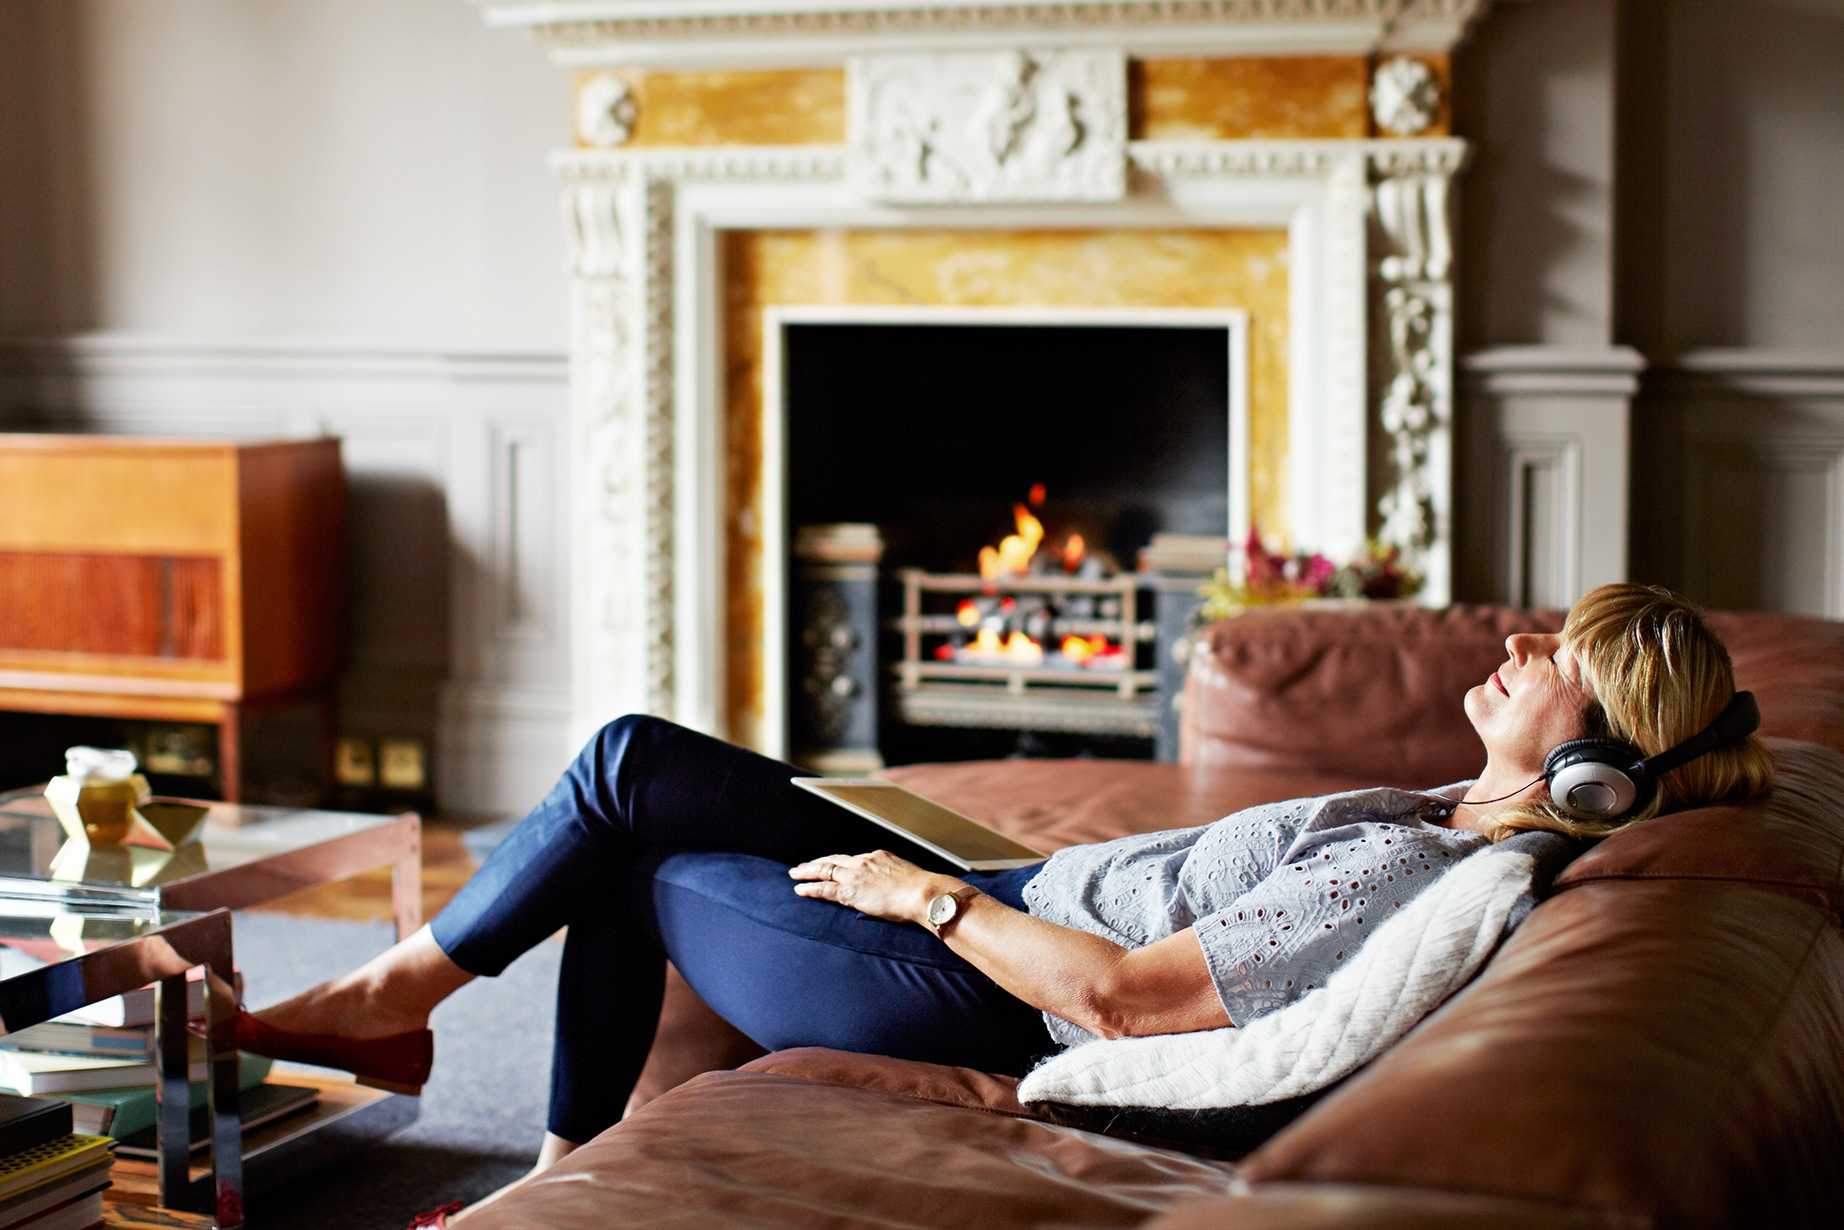 A woman listening to music on her tablet in a living room - Trustly Direct Debit